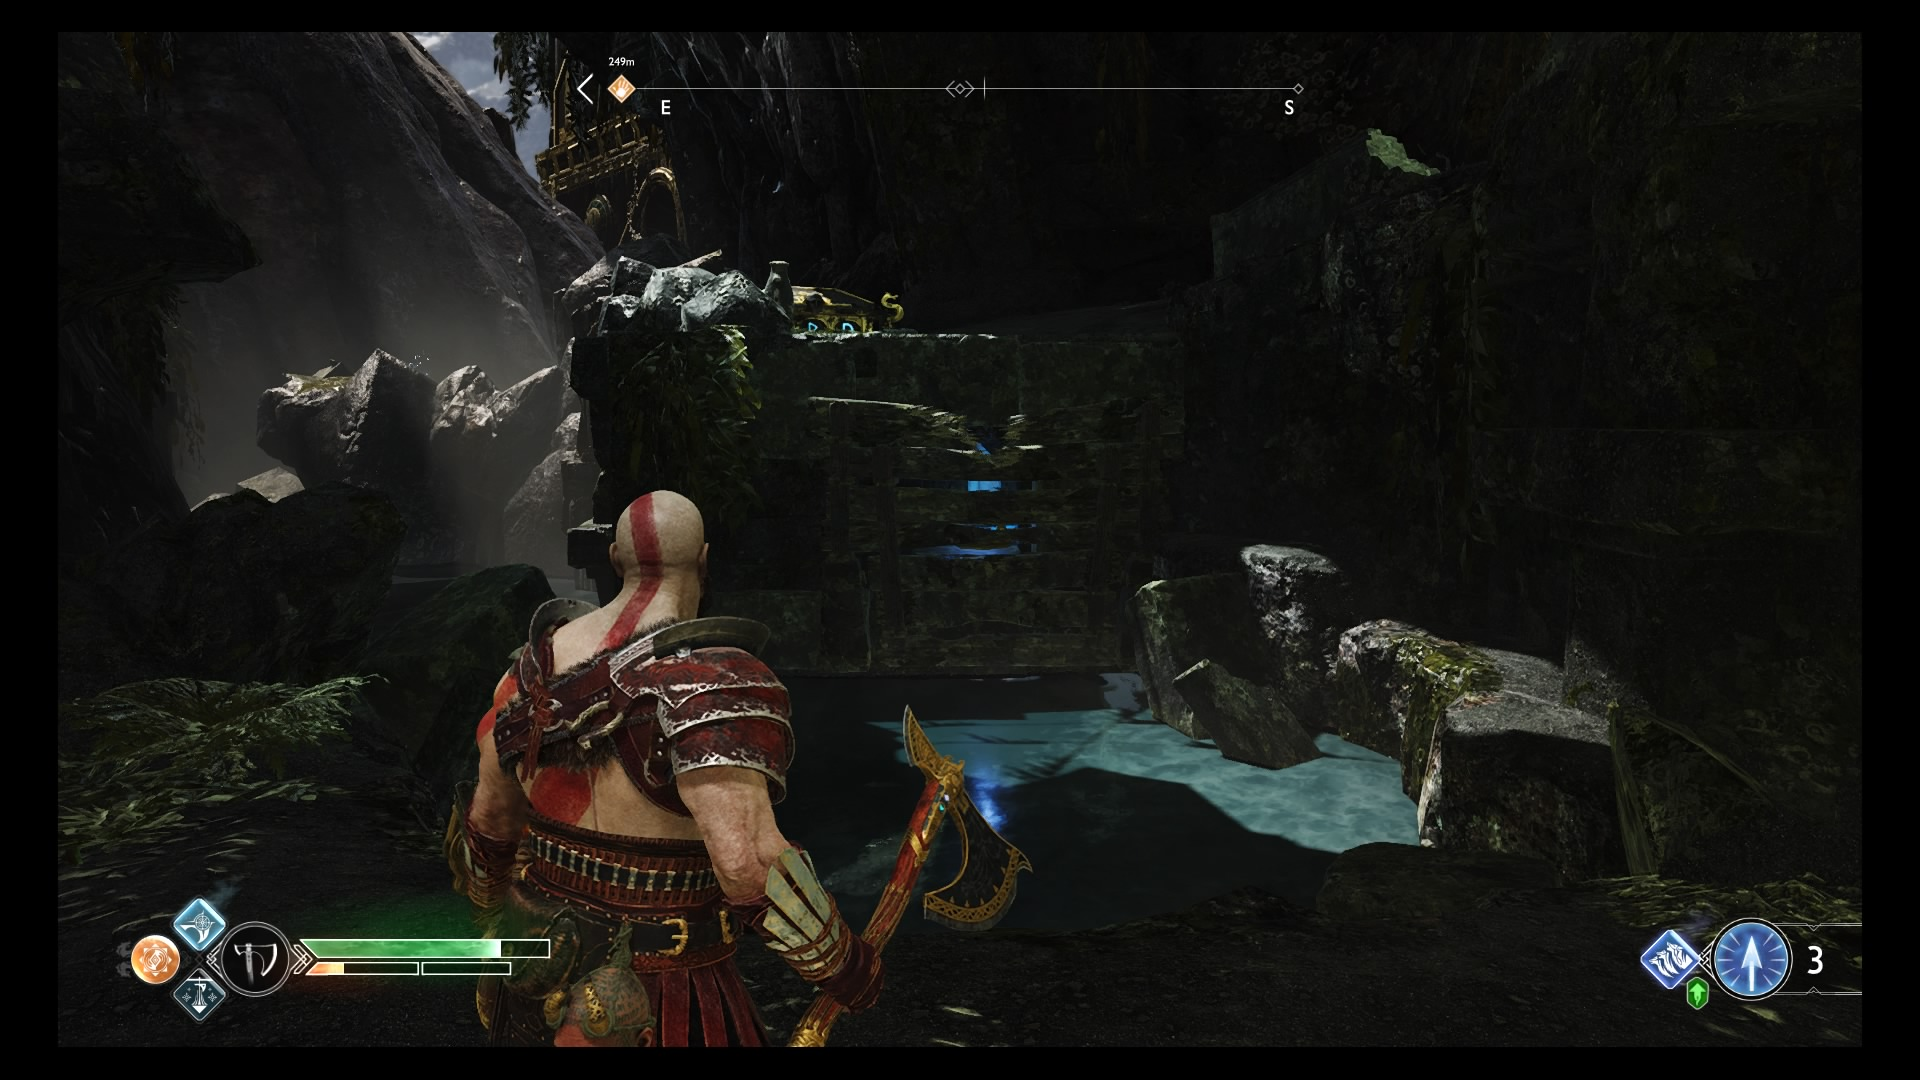 God of War Light Elf Outpost guide – How to open the chest and get